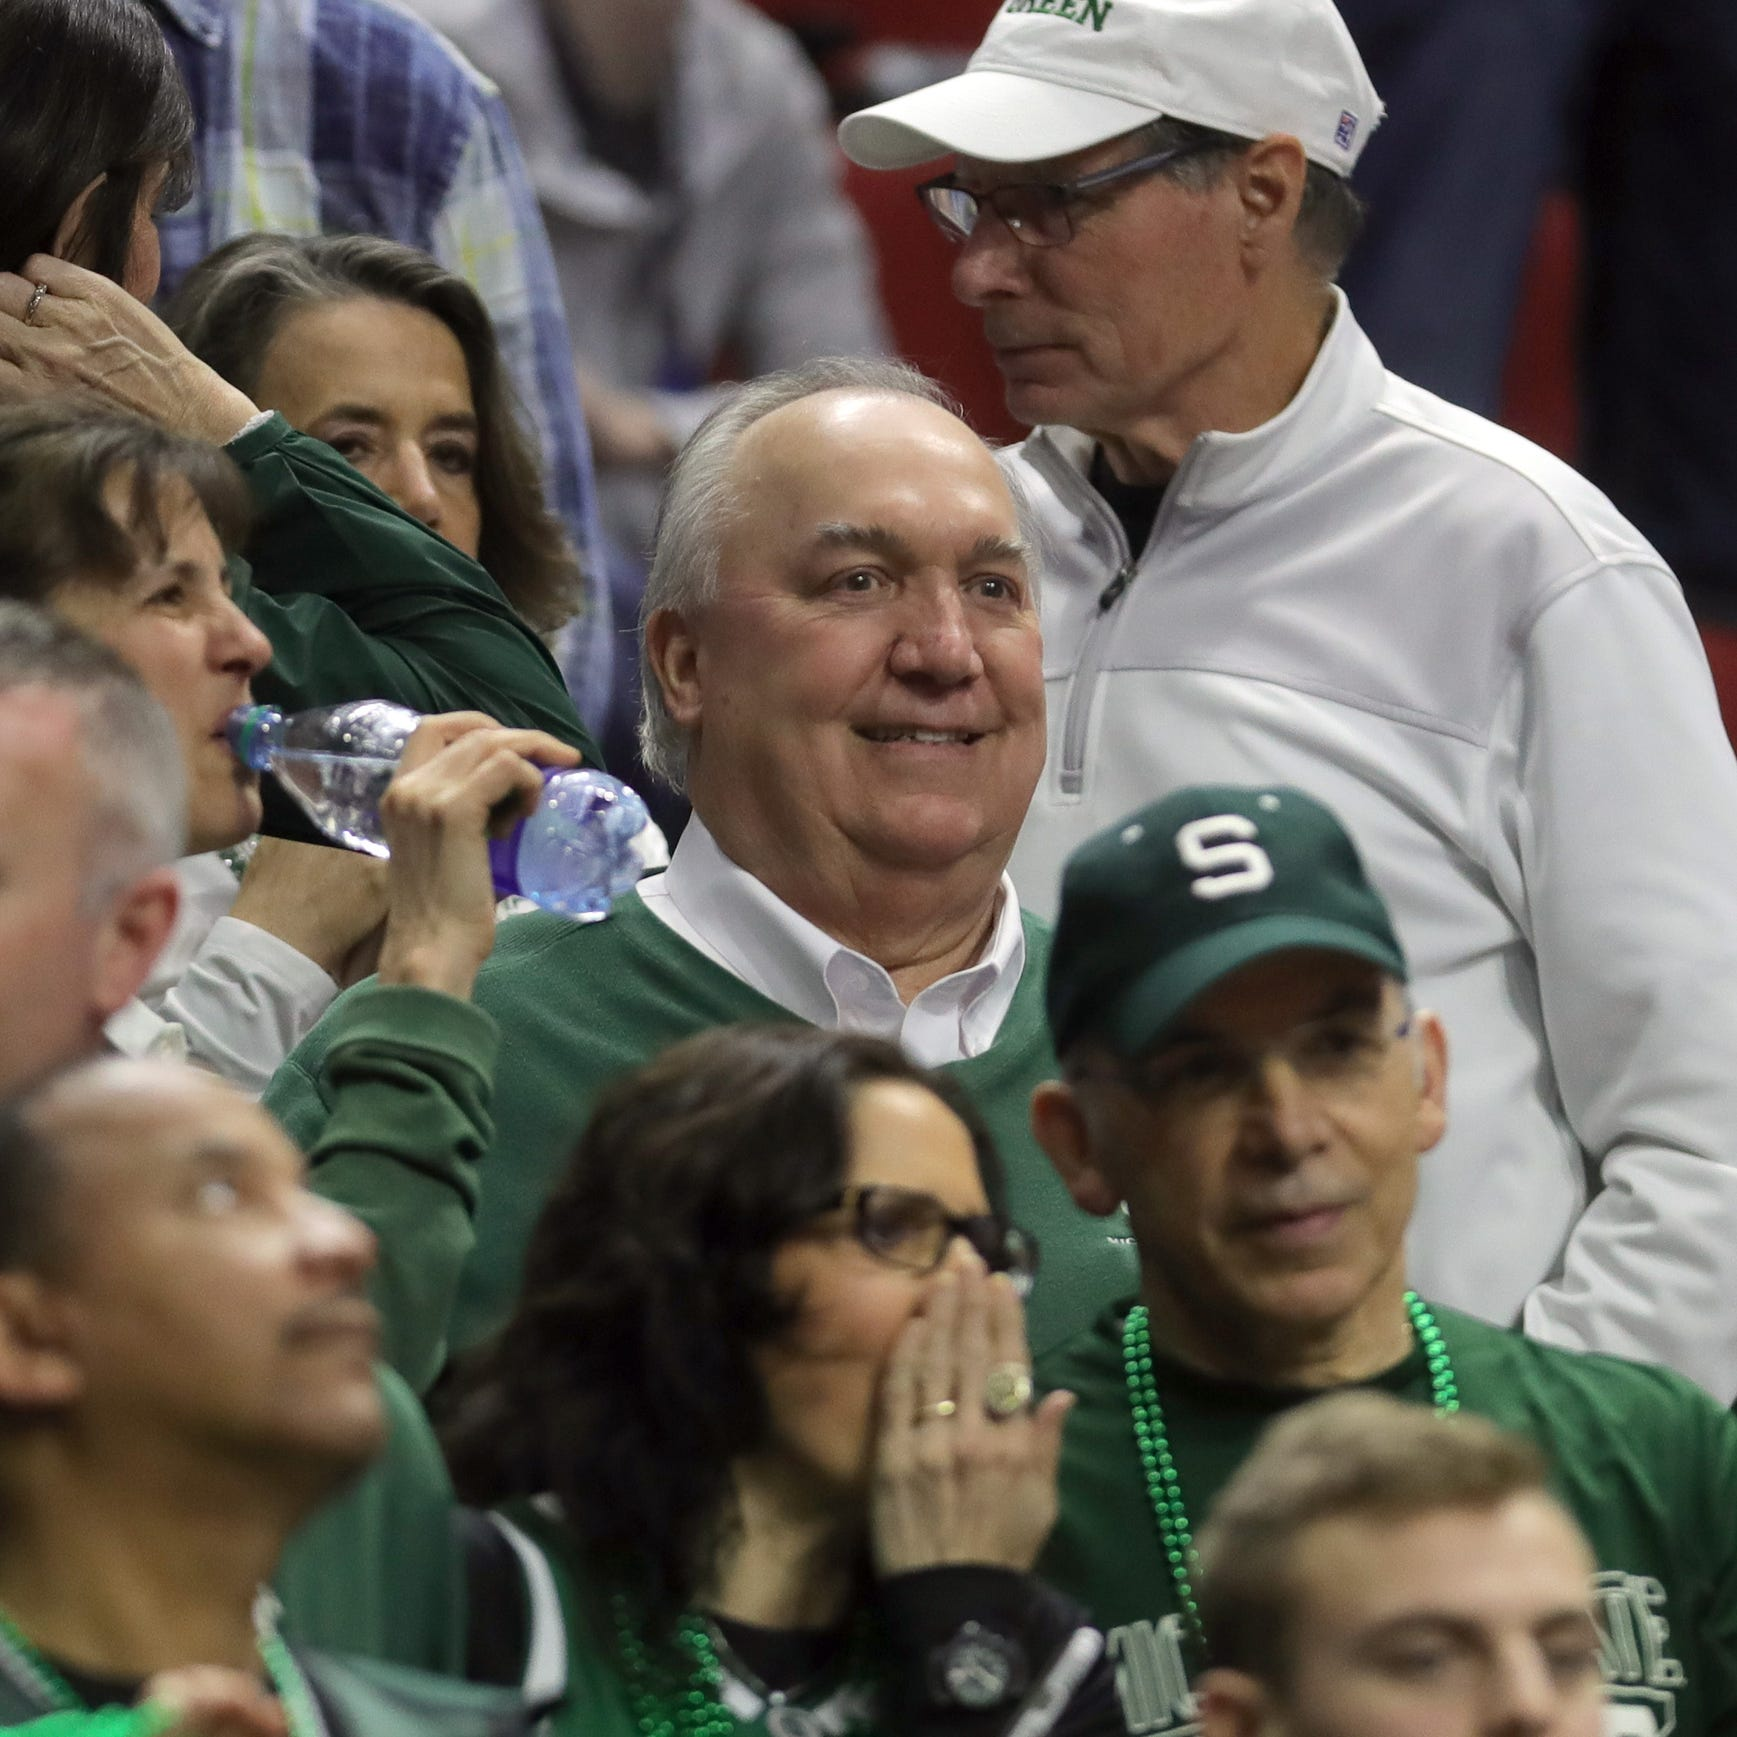 John Engler sidesteps questions before Michigan State's NCAA opener